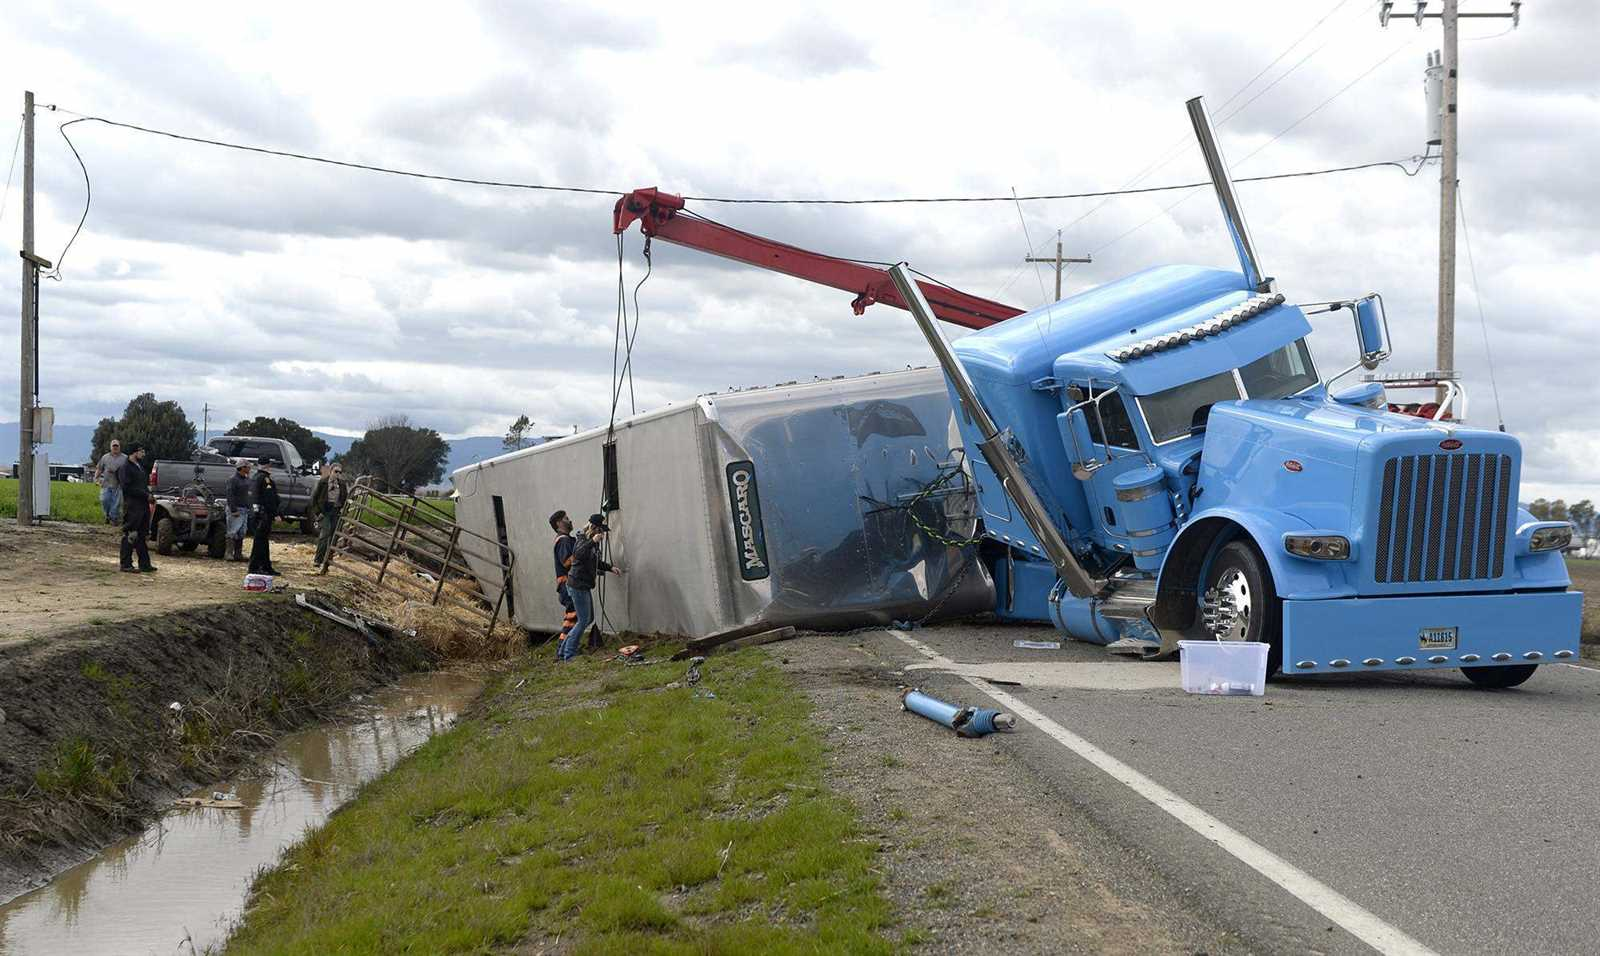 McAllen Commercial Vehicle Accident Lawyer